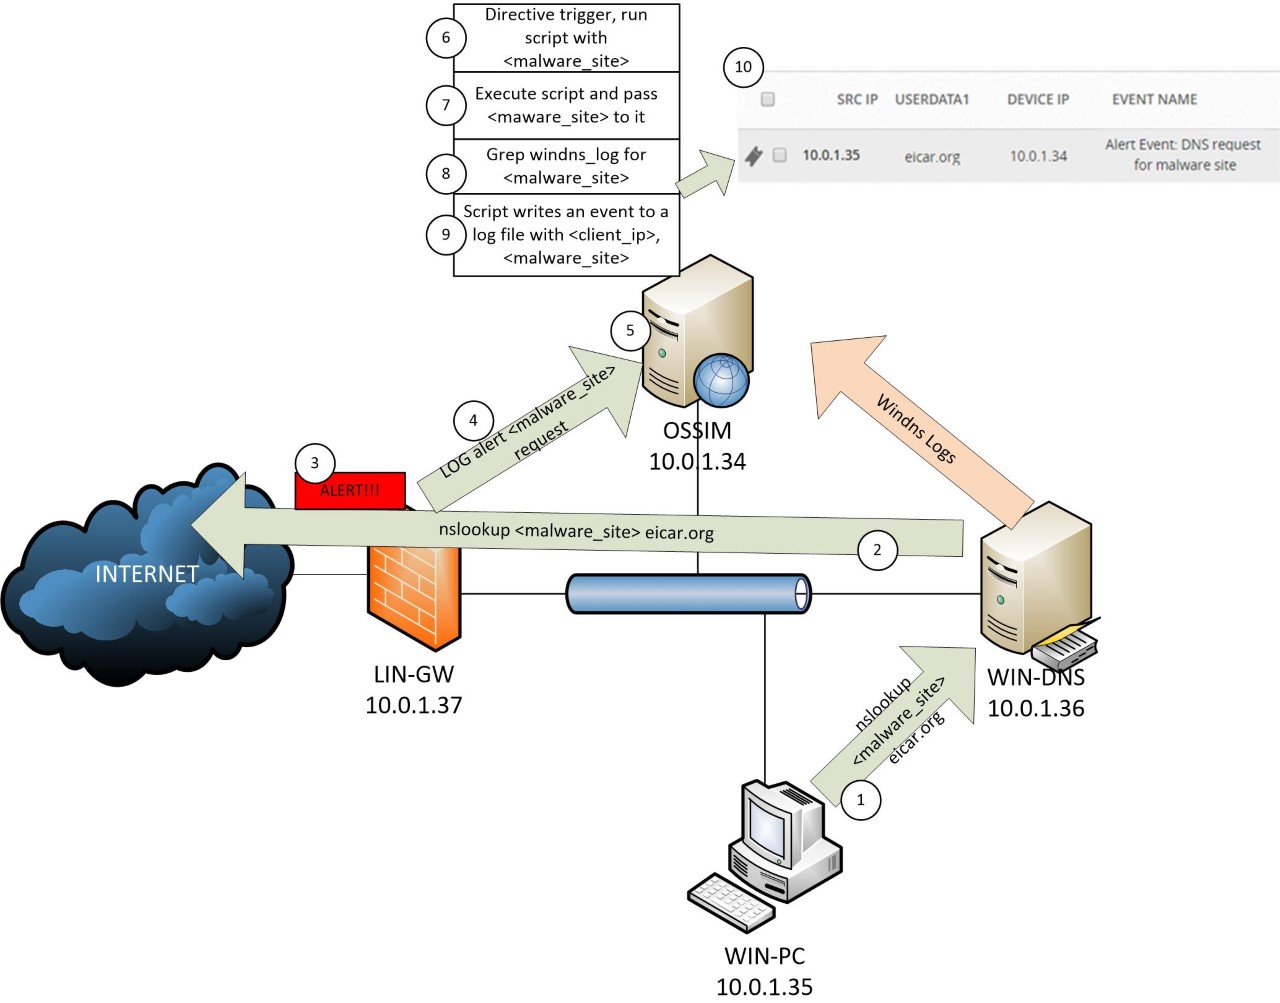 ossim lab environment including Windows PCs DNS and IPS gateway